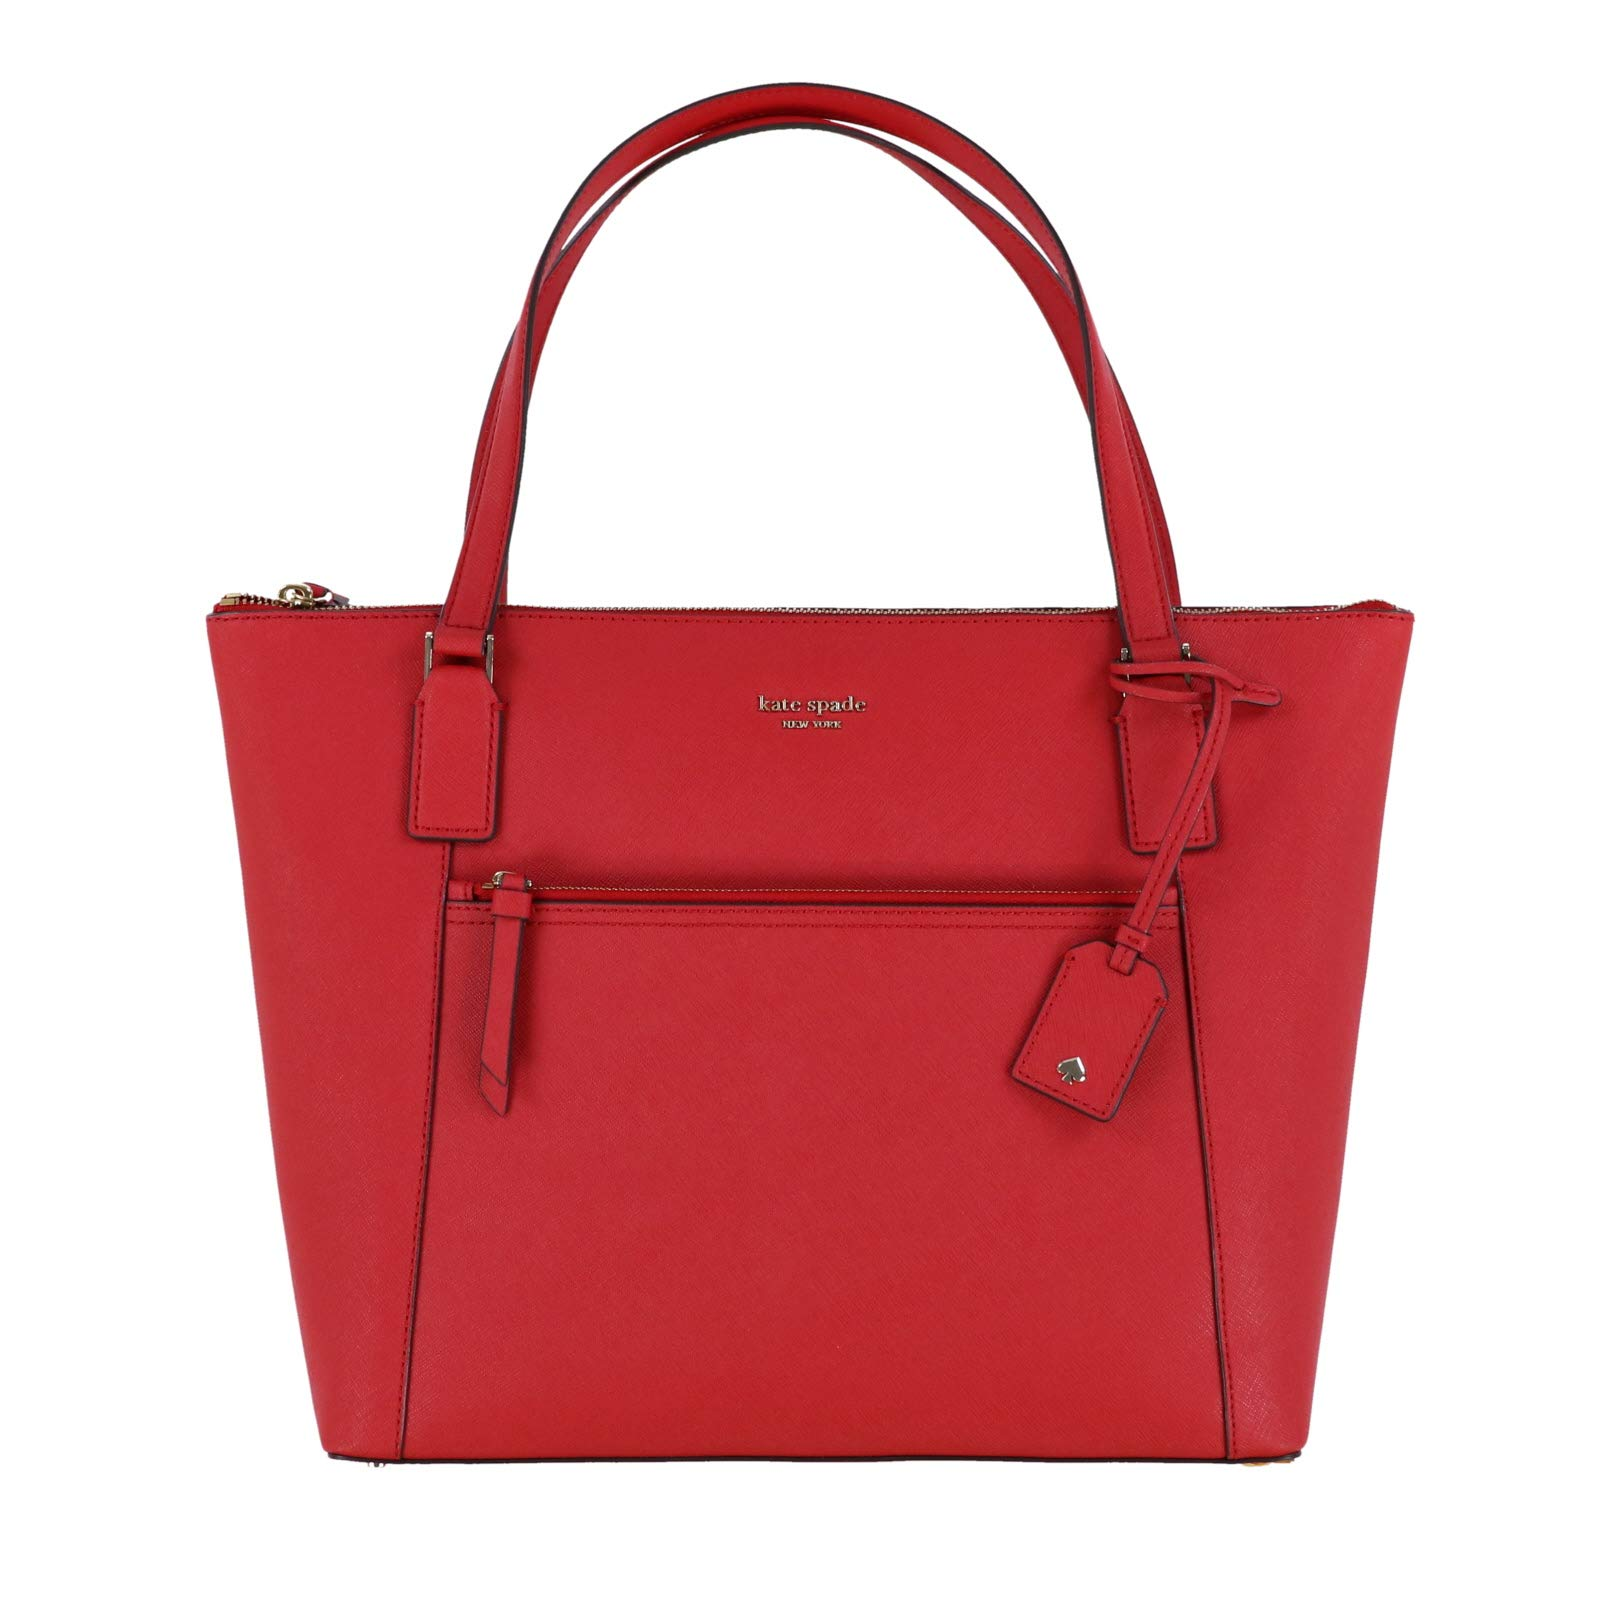 Kate Spade Cameron Saffiano Leather Pocket Tote Bag Purse Handbag for Work School Office Travel (Hot Chili) by Kate Spade New York